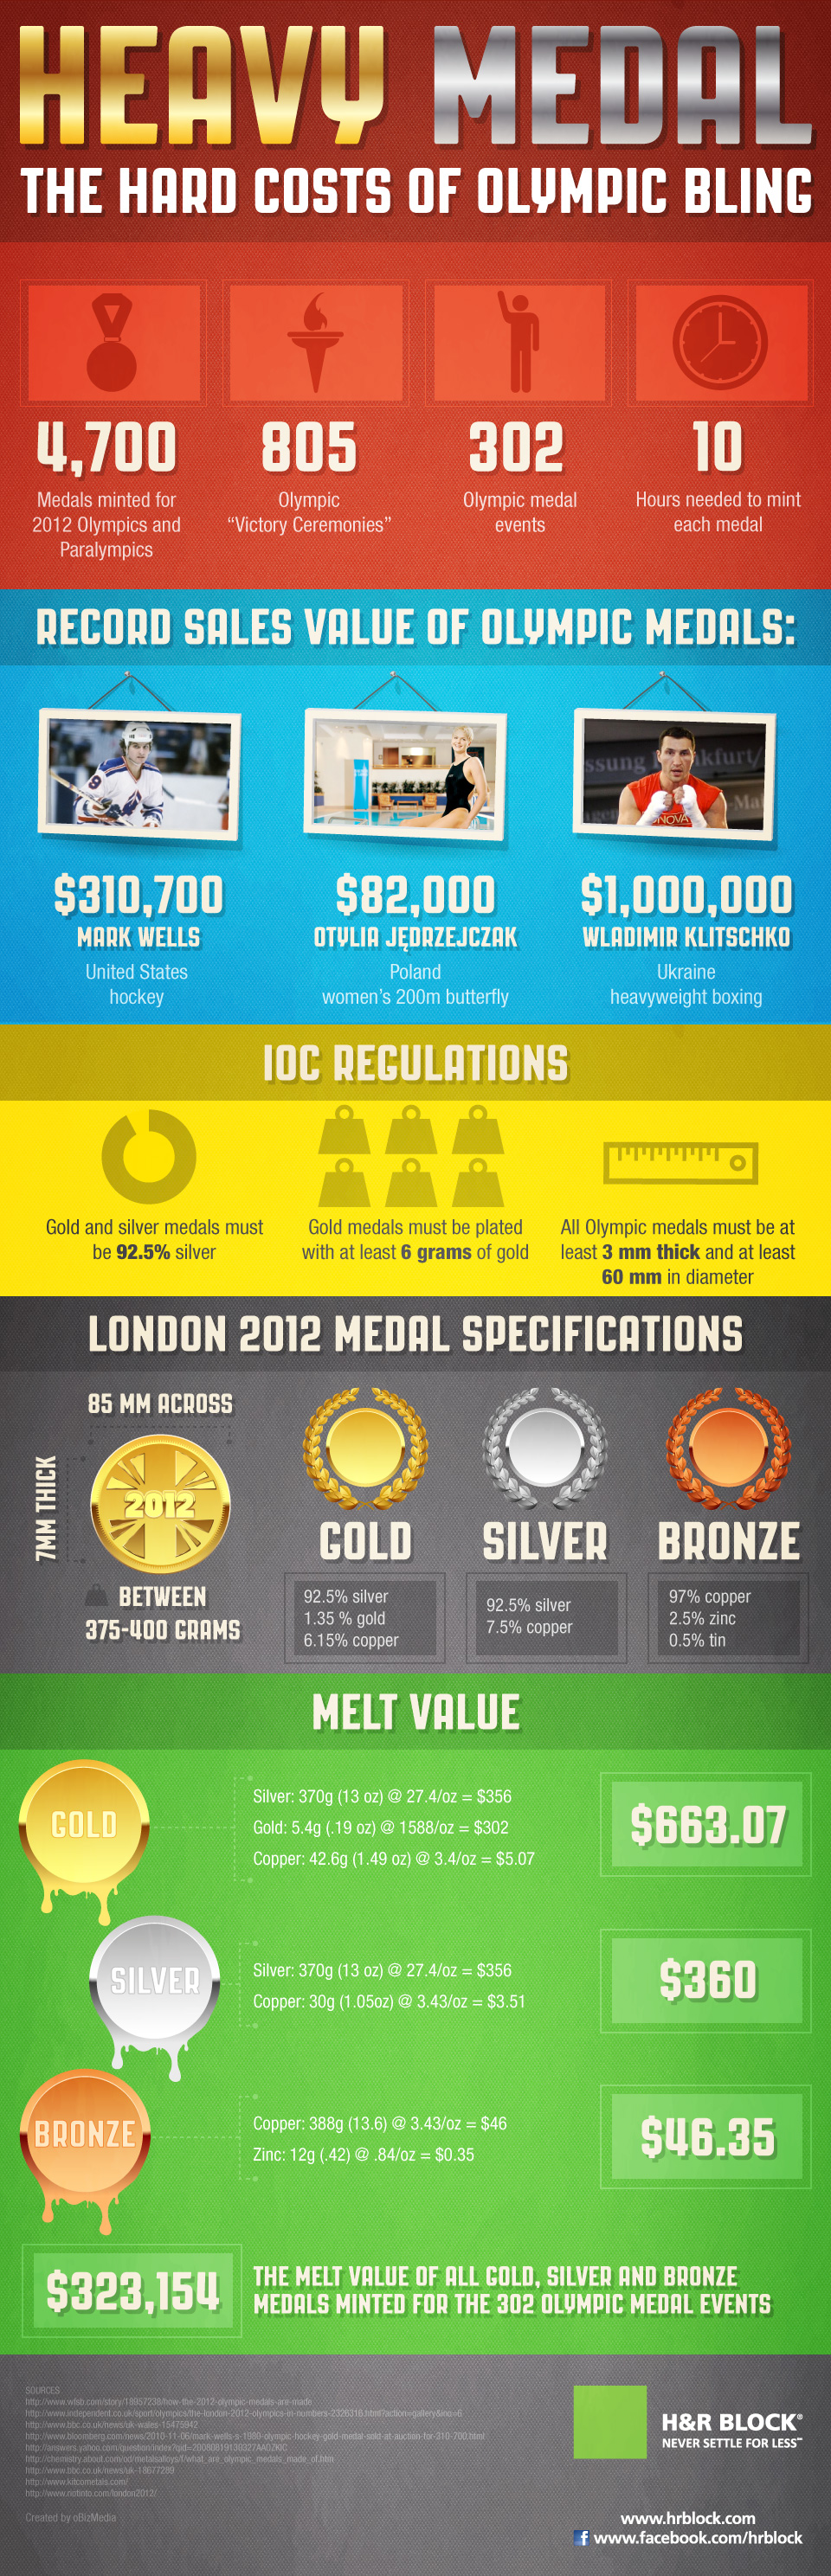 The Hard Costs of Olympics